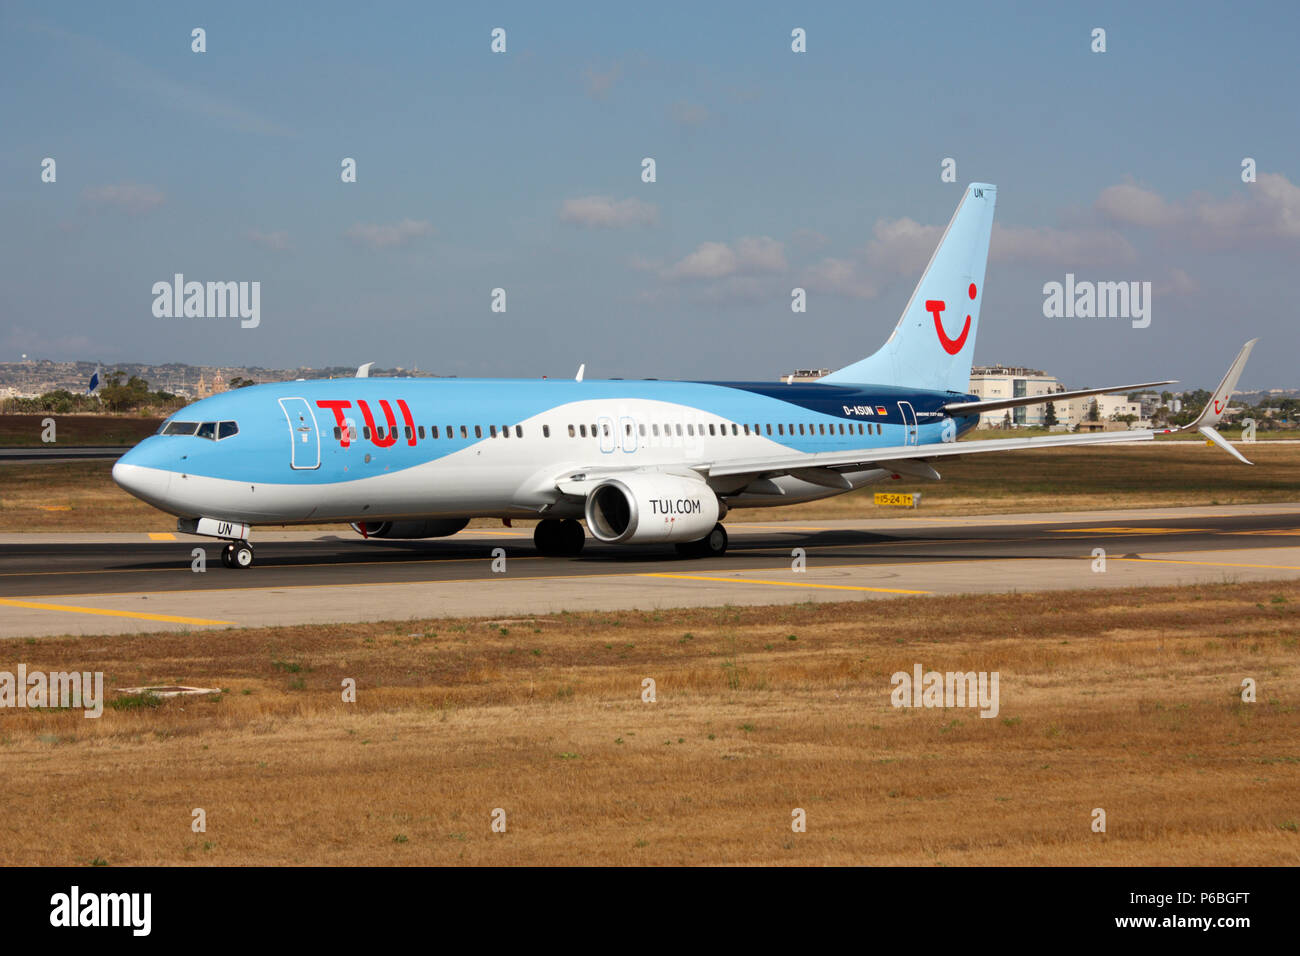 TUI Airways Boeing 737-800 passenger jet plane taxiing for departure from Malta. Modern commercial aviation. - Stock Image